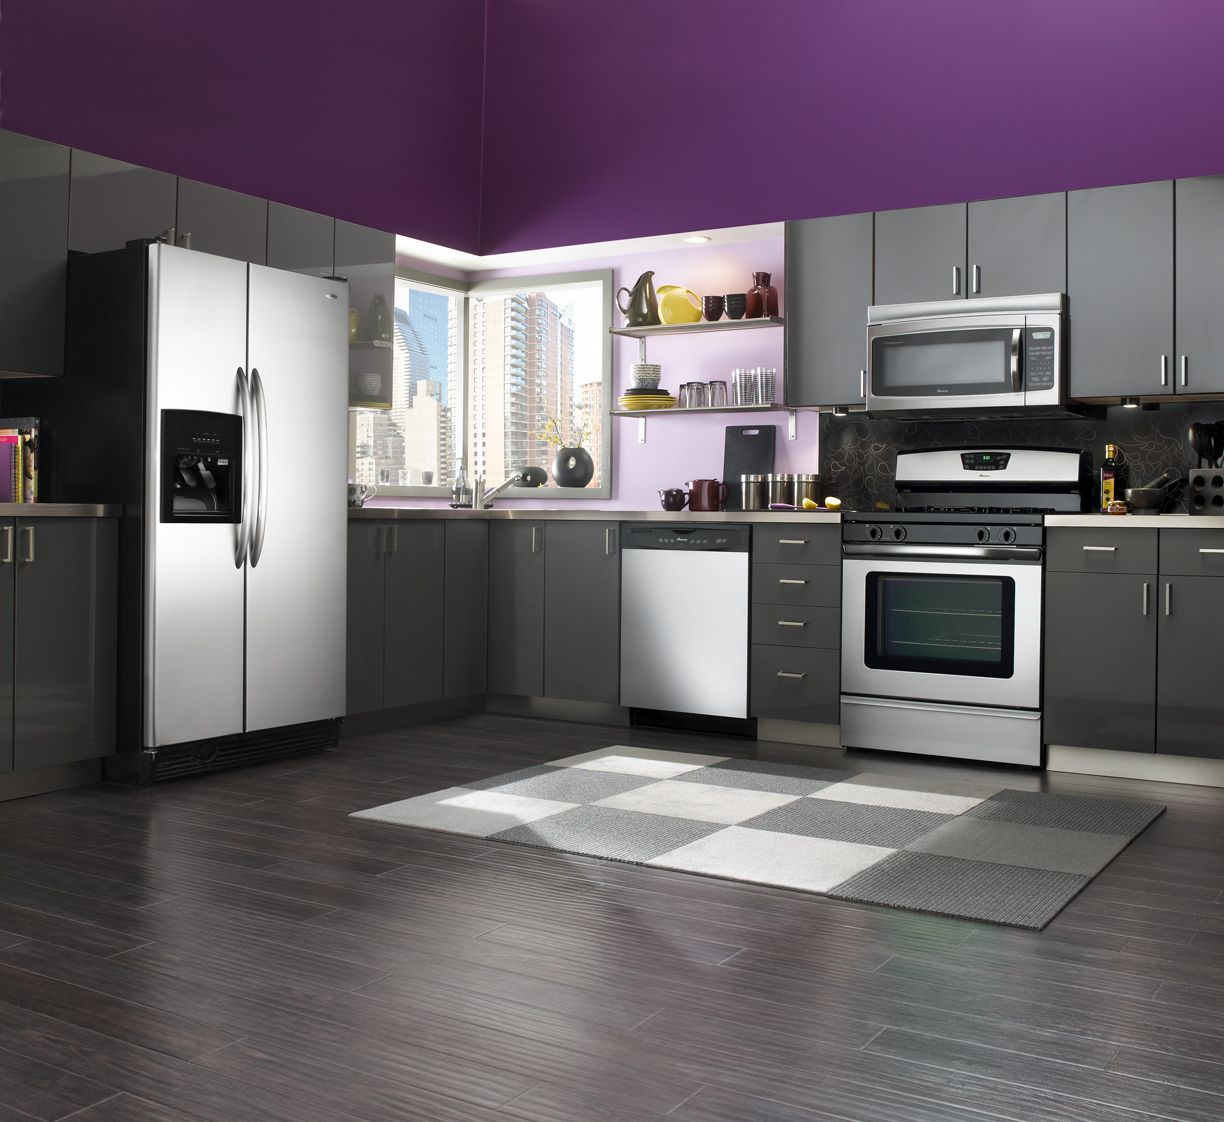 Beautiful Kitchen Designs In Purple Color Enticing Purple Kitchen Design With Gray Kitchen